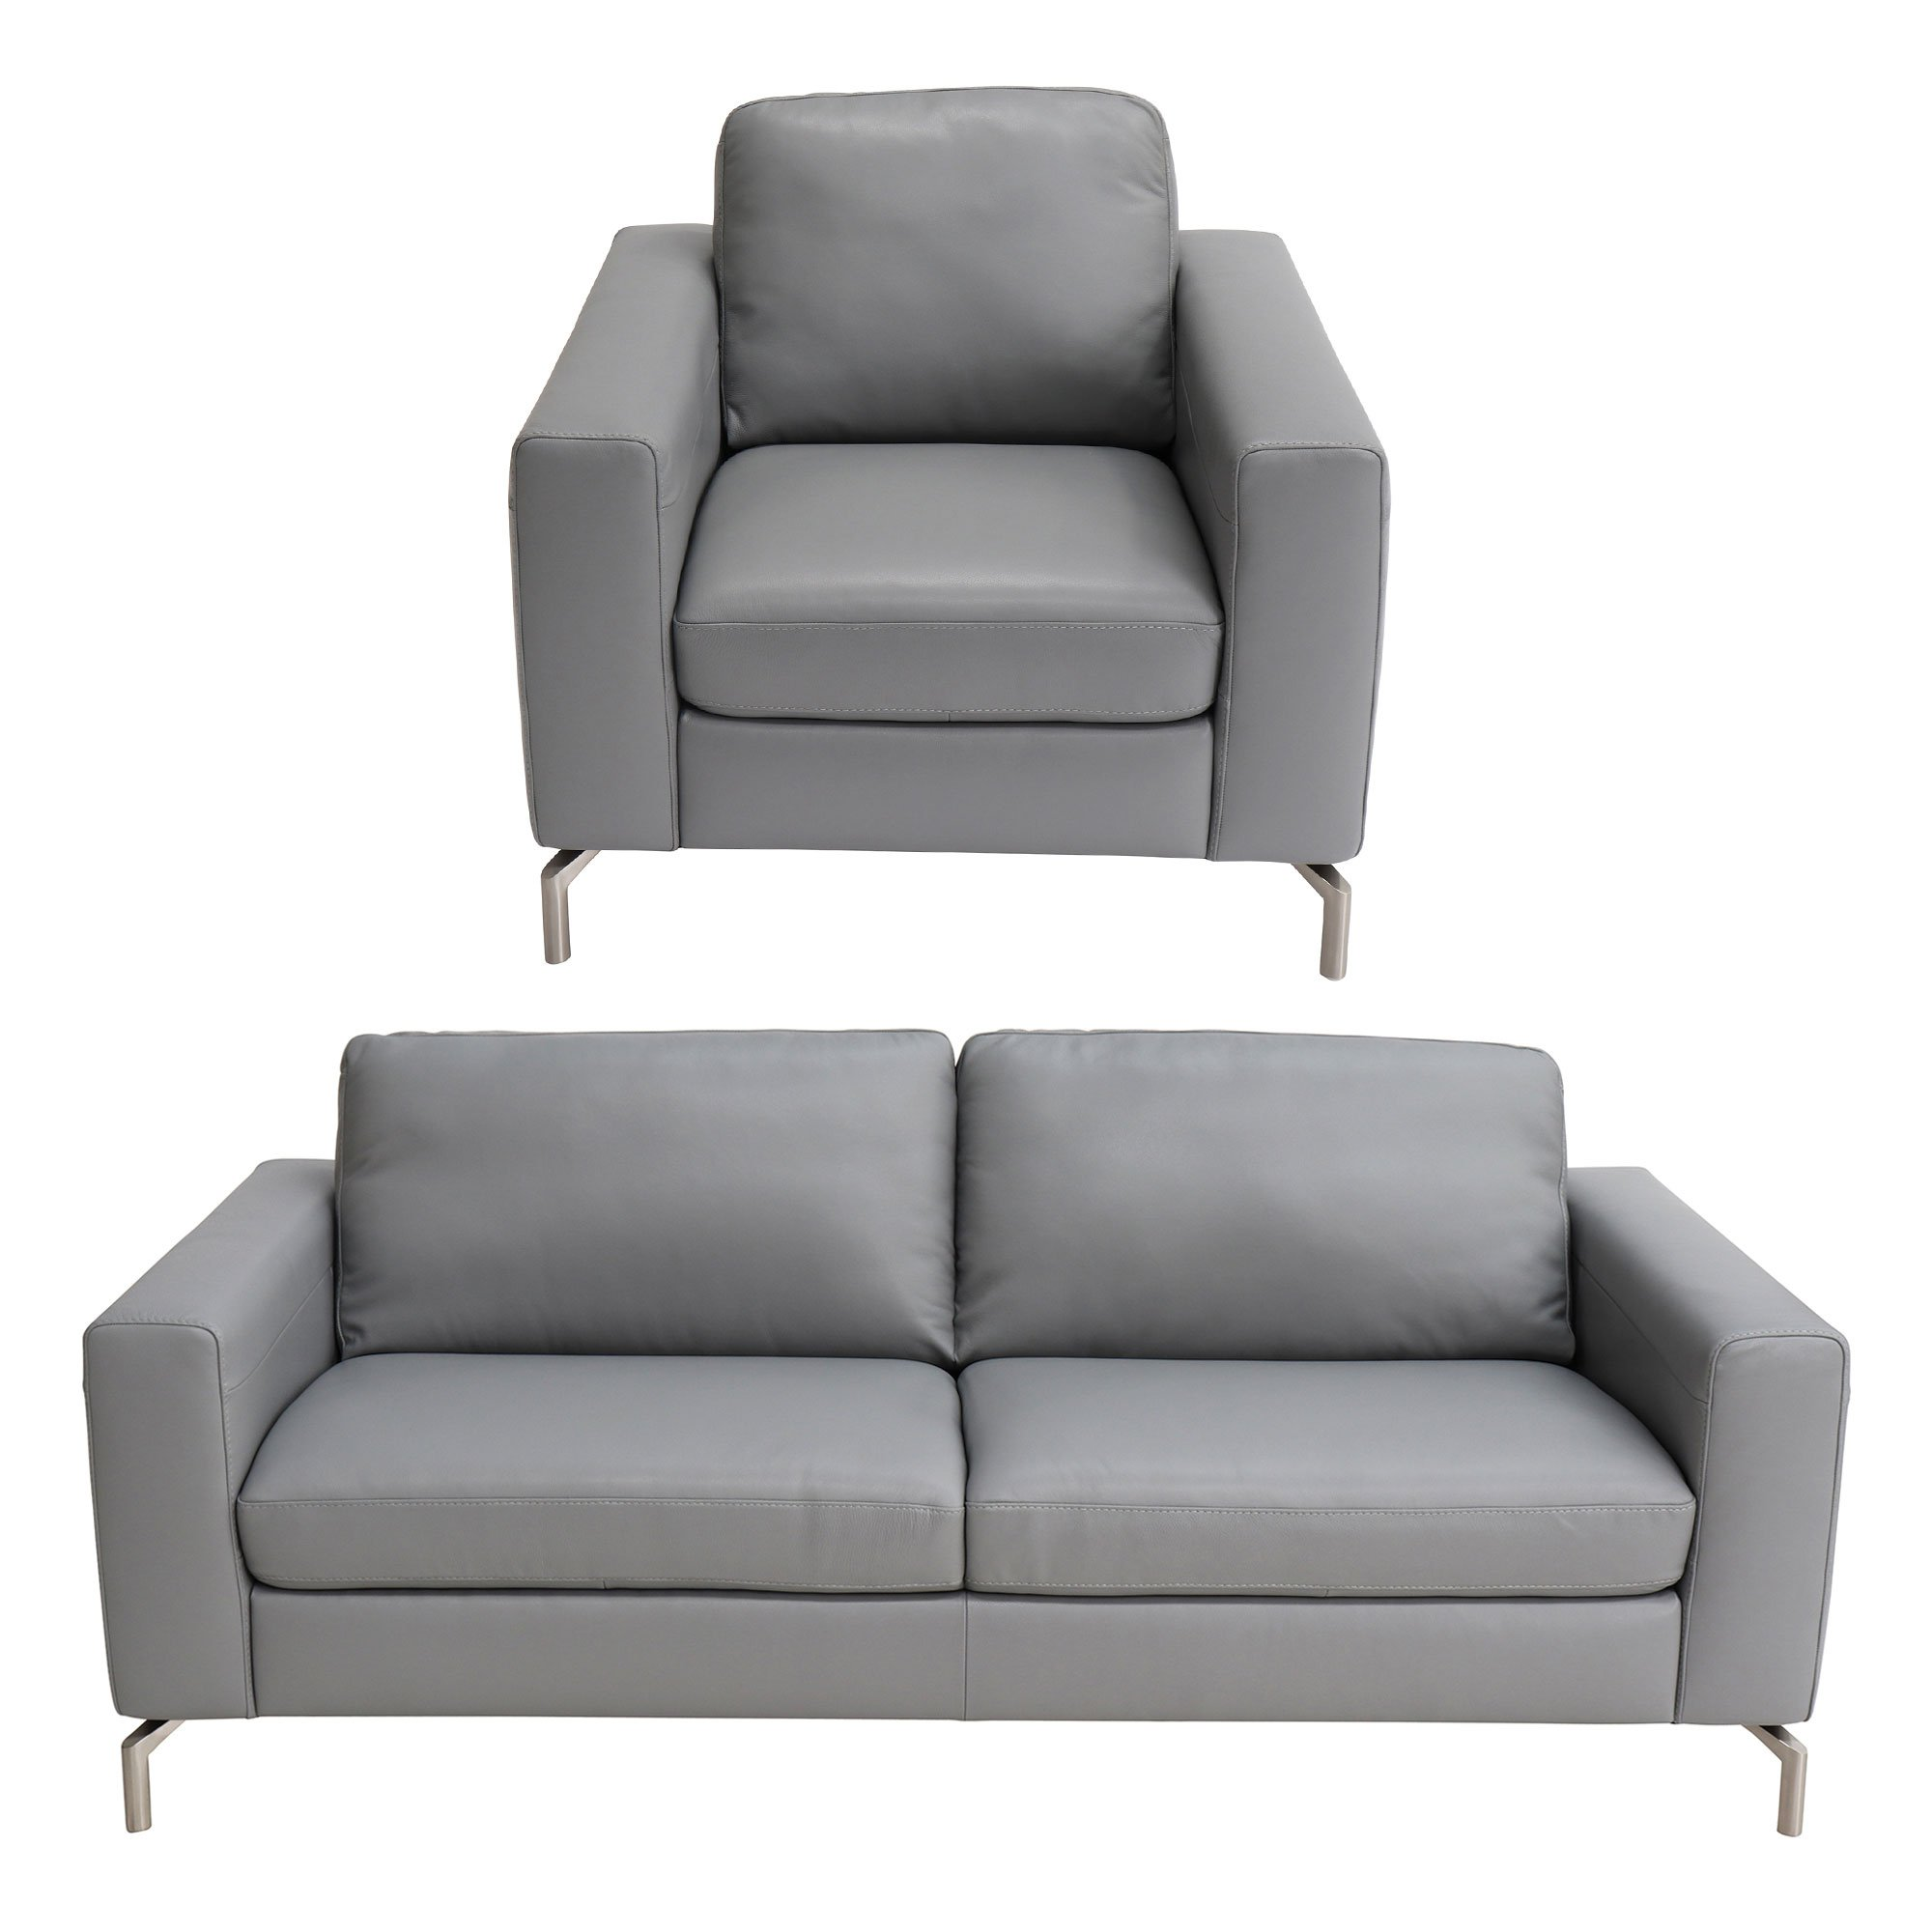 Picture of: Natuzzi Editions Milano Grey Leather 3 Seater Sofa Armchair